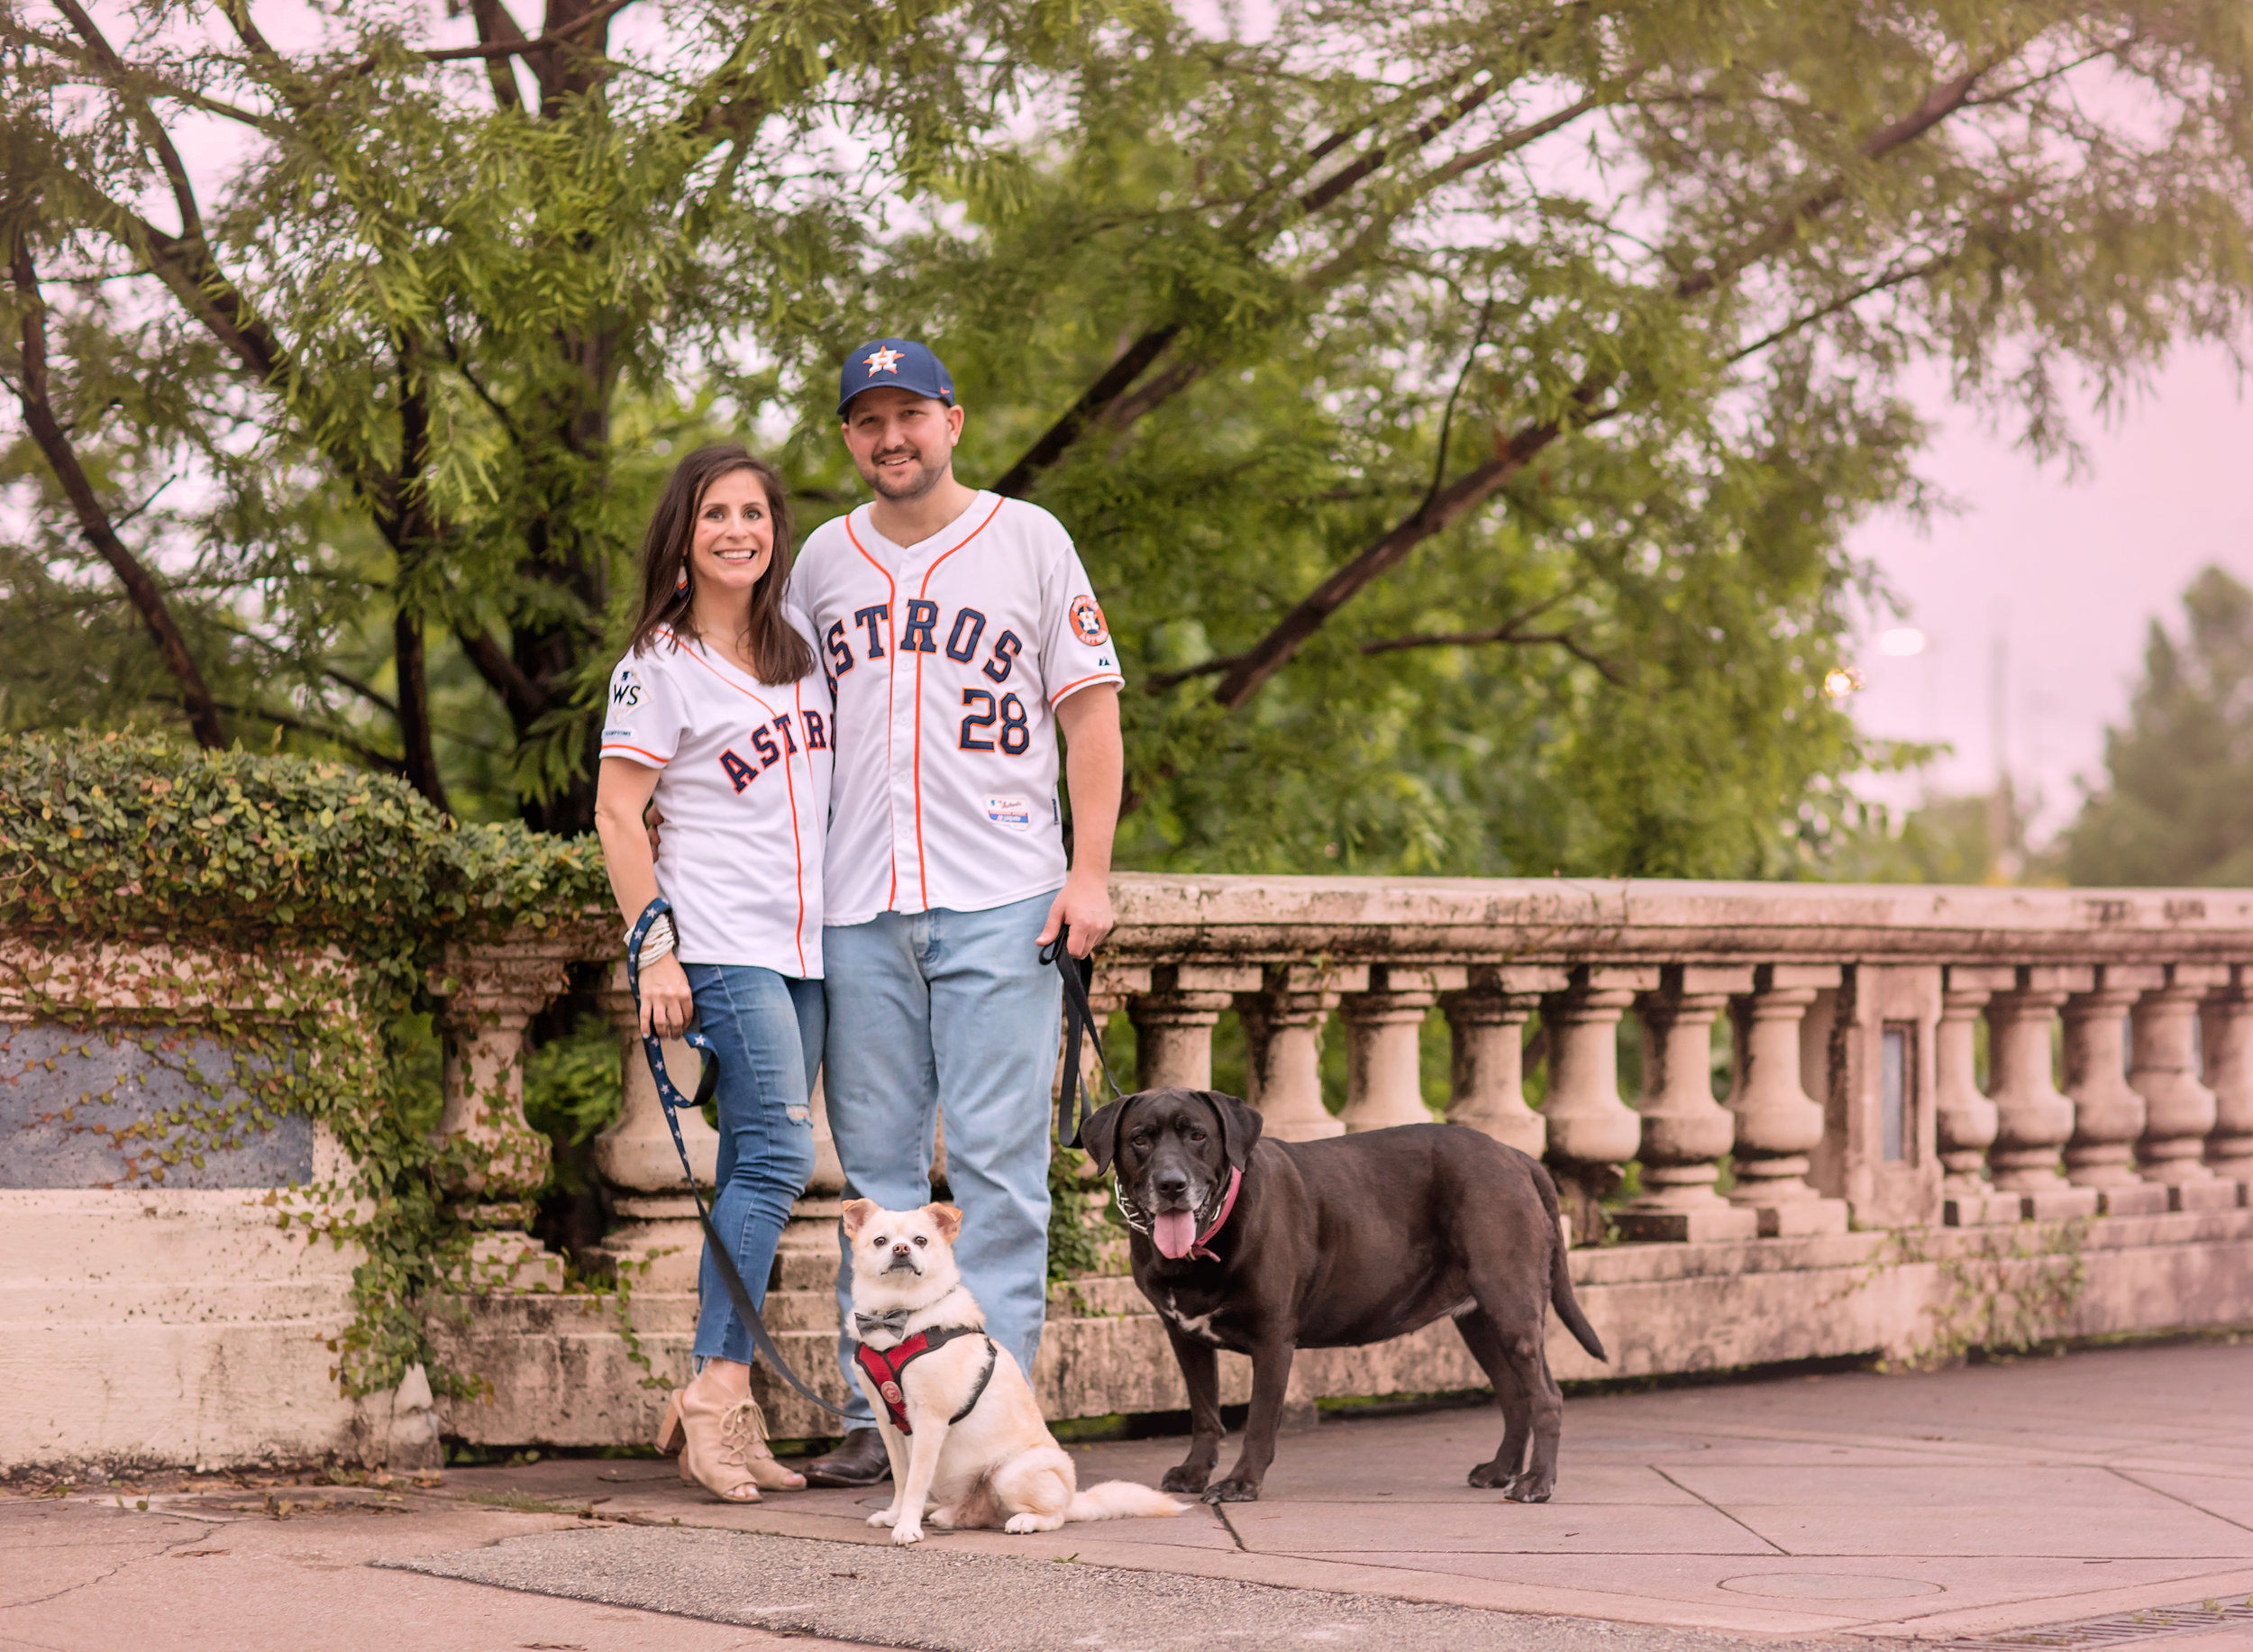 Downtownhoustonengagementwithdogs.jpg